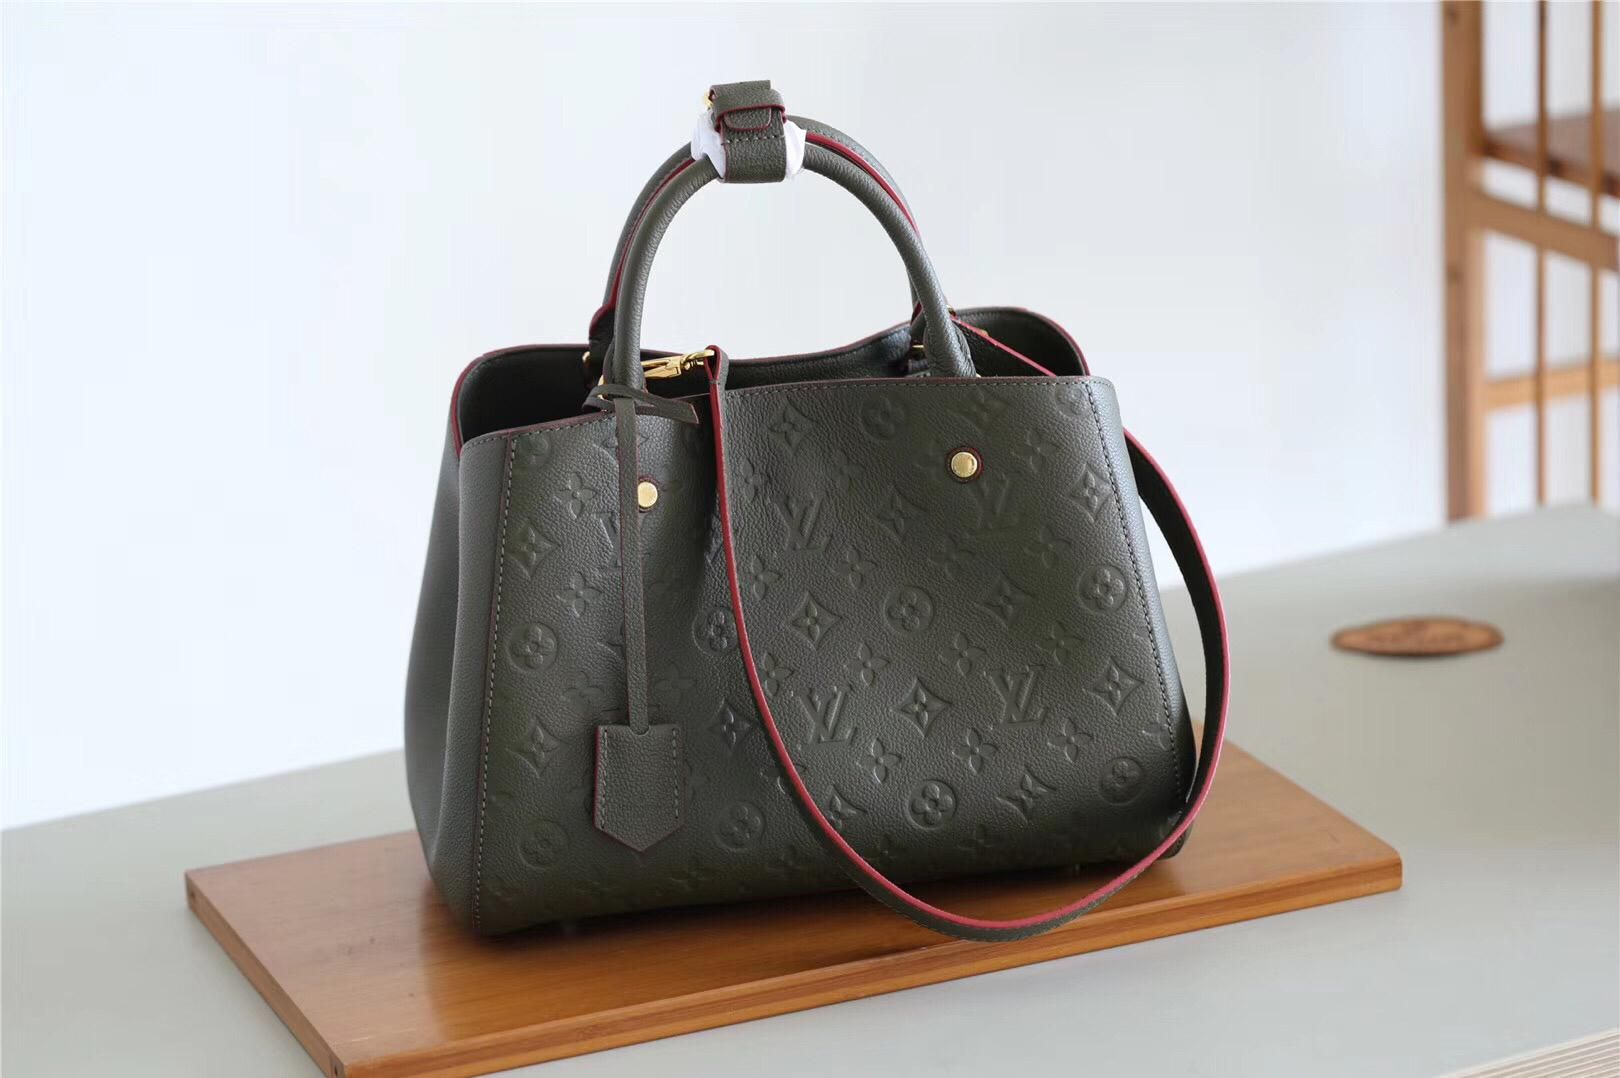 91c726fb M43660 Louis Vuitton Fall-Winter 2018 Premium Montaigne MM-Kaki Fango For  the dynamic businesswoman, the Montaigne MM is ideal.